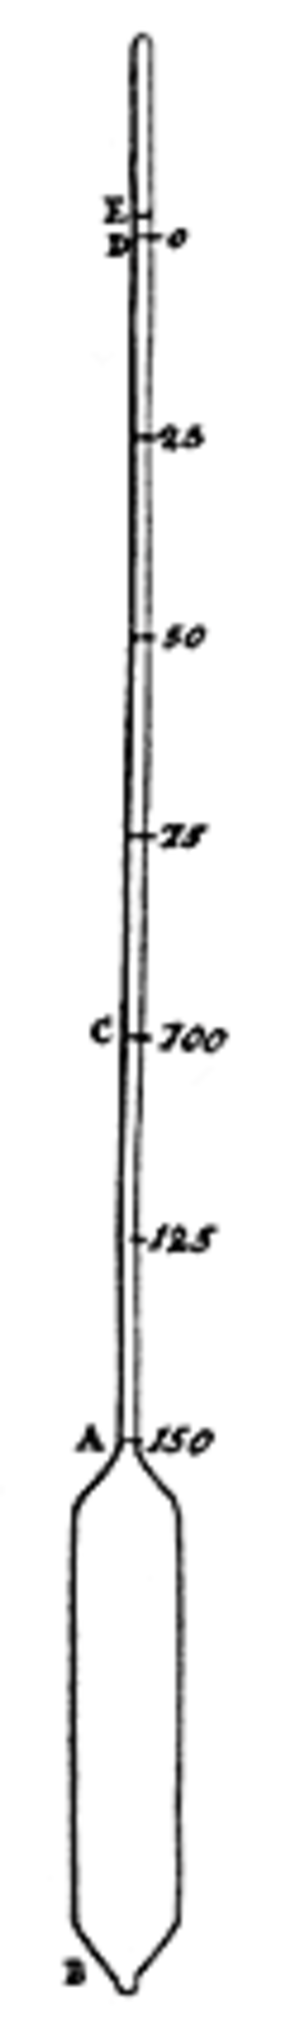 Celsius - An illustration of Anders Celsius's original thermometer. Note the reversed scale, where 100 is the freezing point of water and 0 is its boiling point.